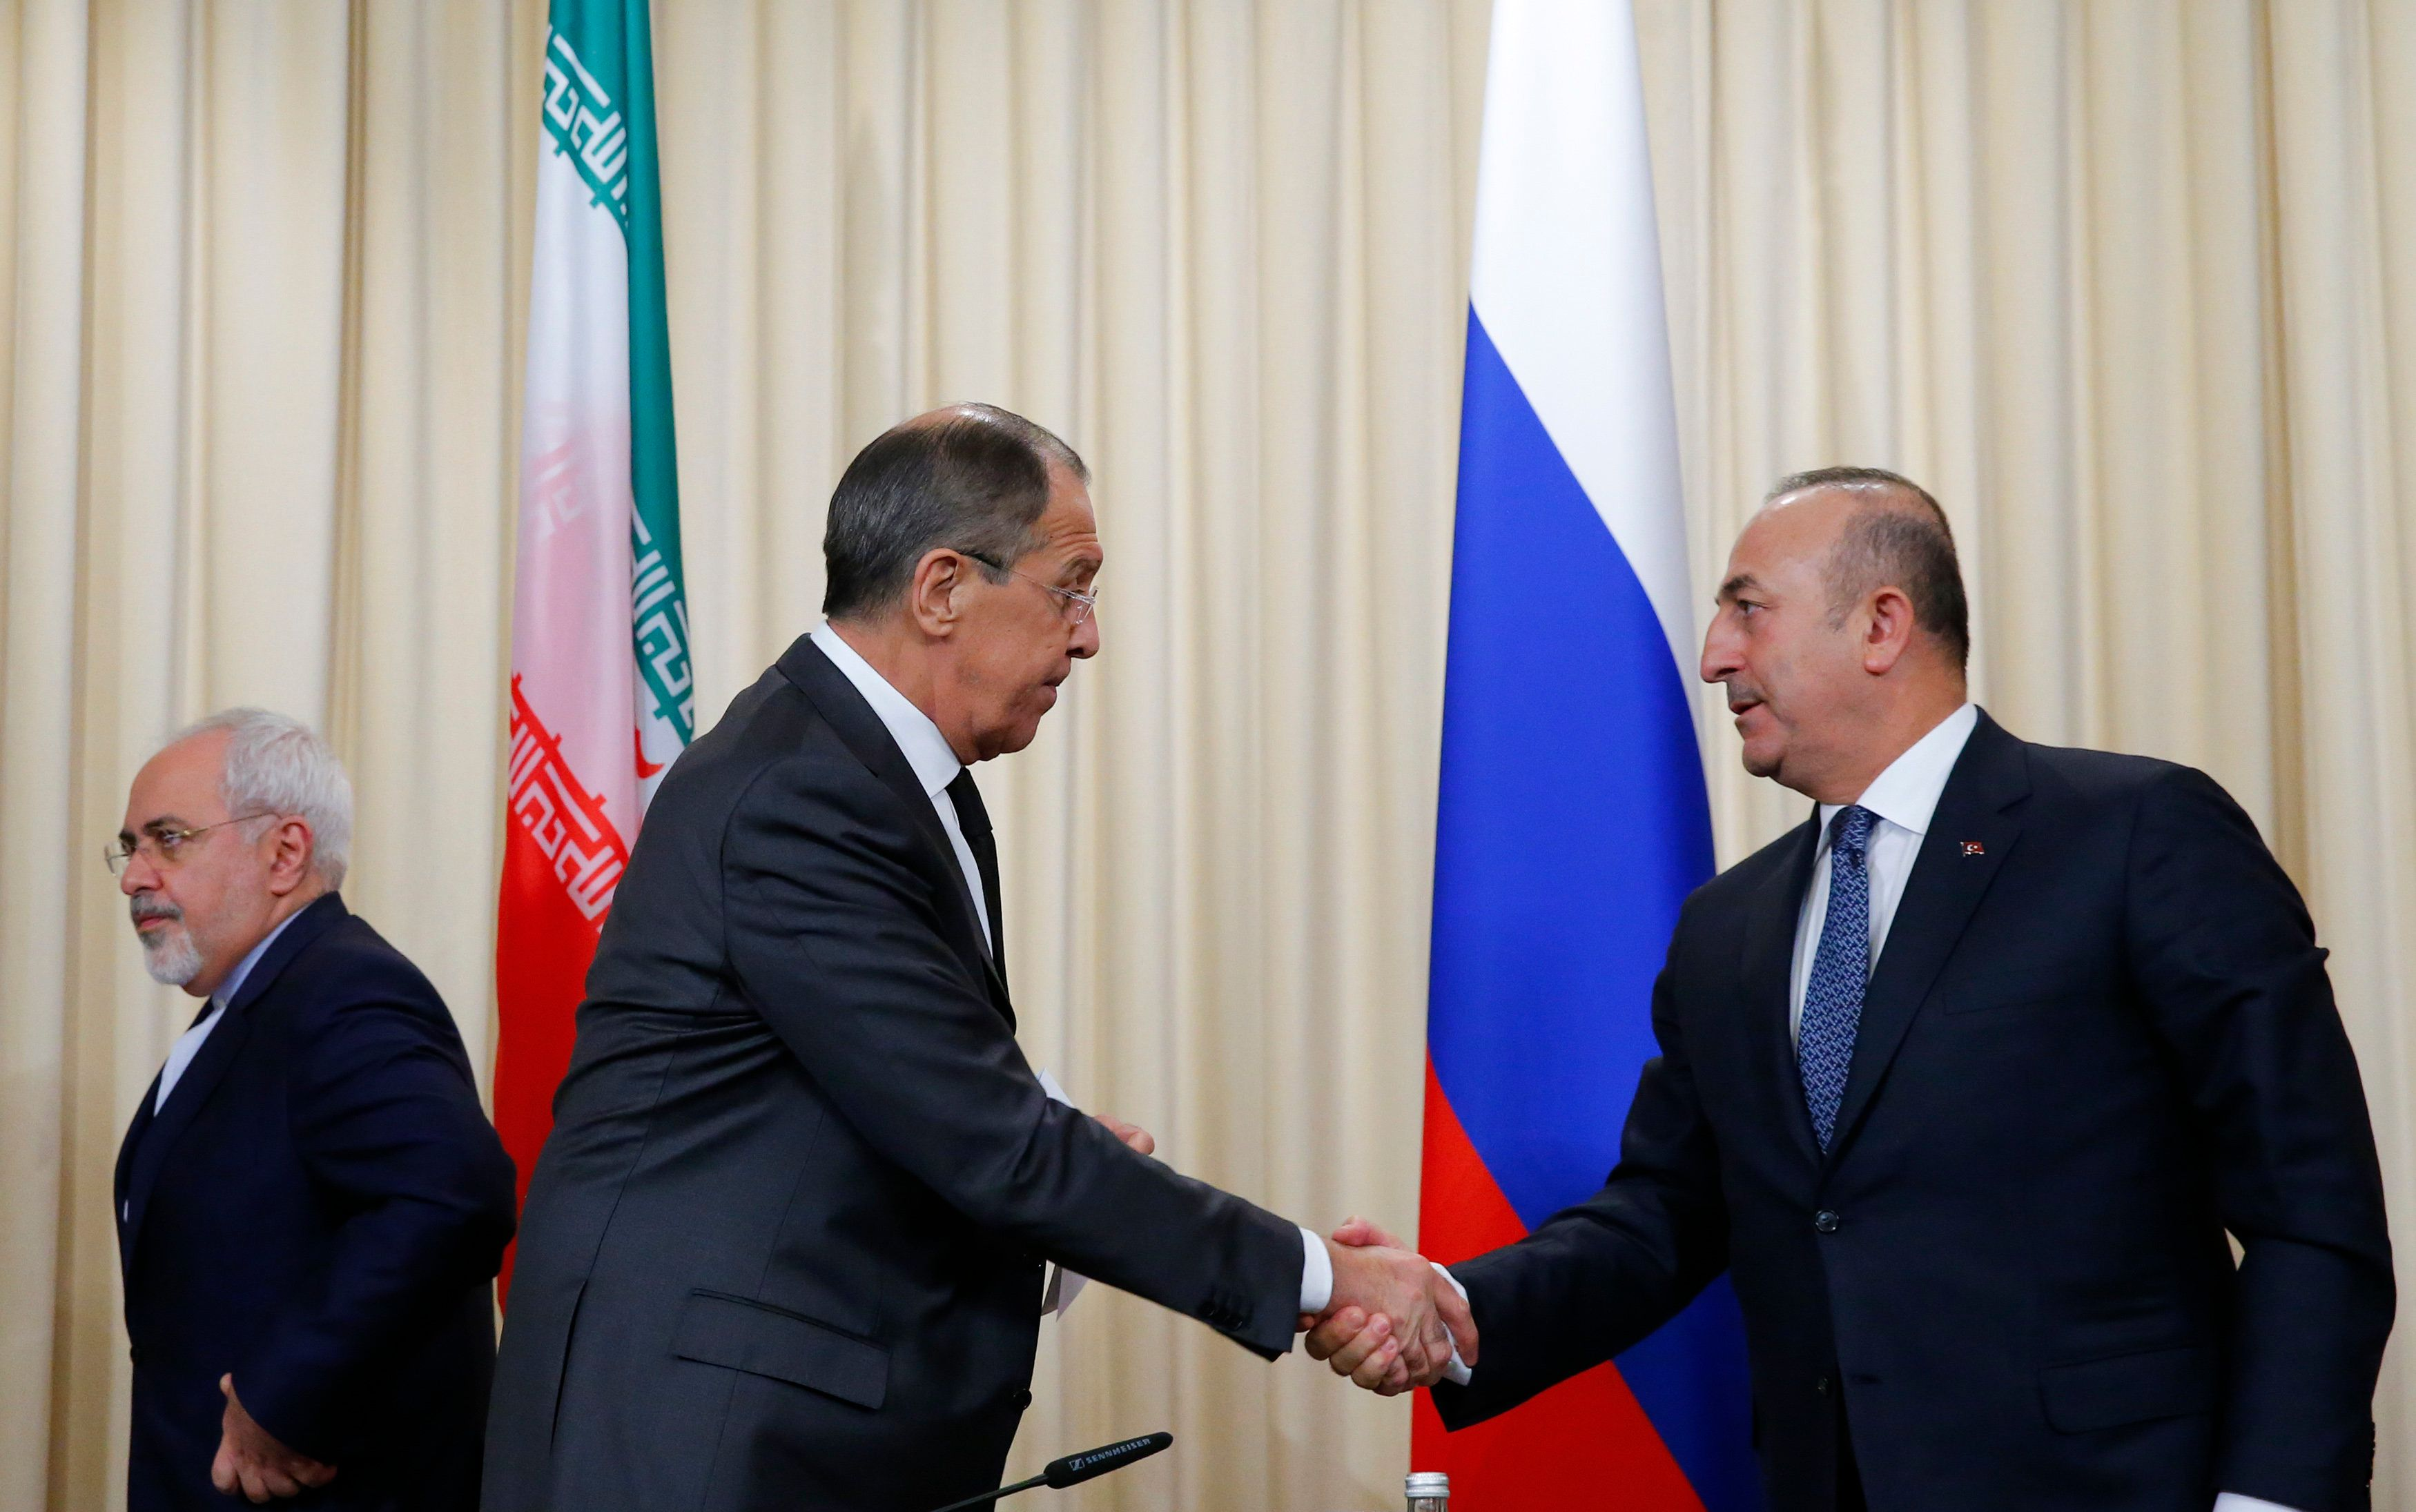 Foreign ministers, Sergei Lavrov, left, of Russia, and Mevlut Cavusoglu, right, of Turkeyhave reportedly...